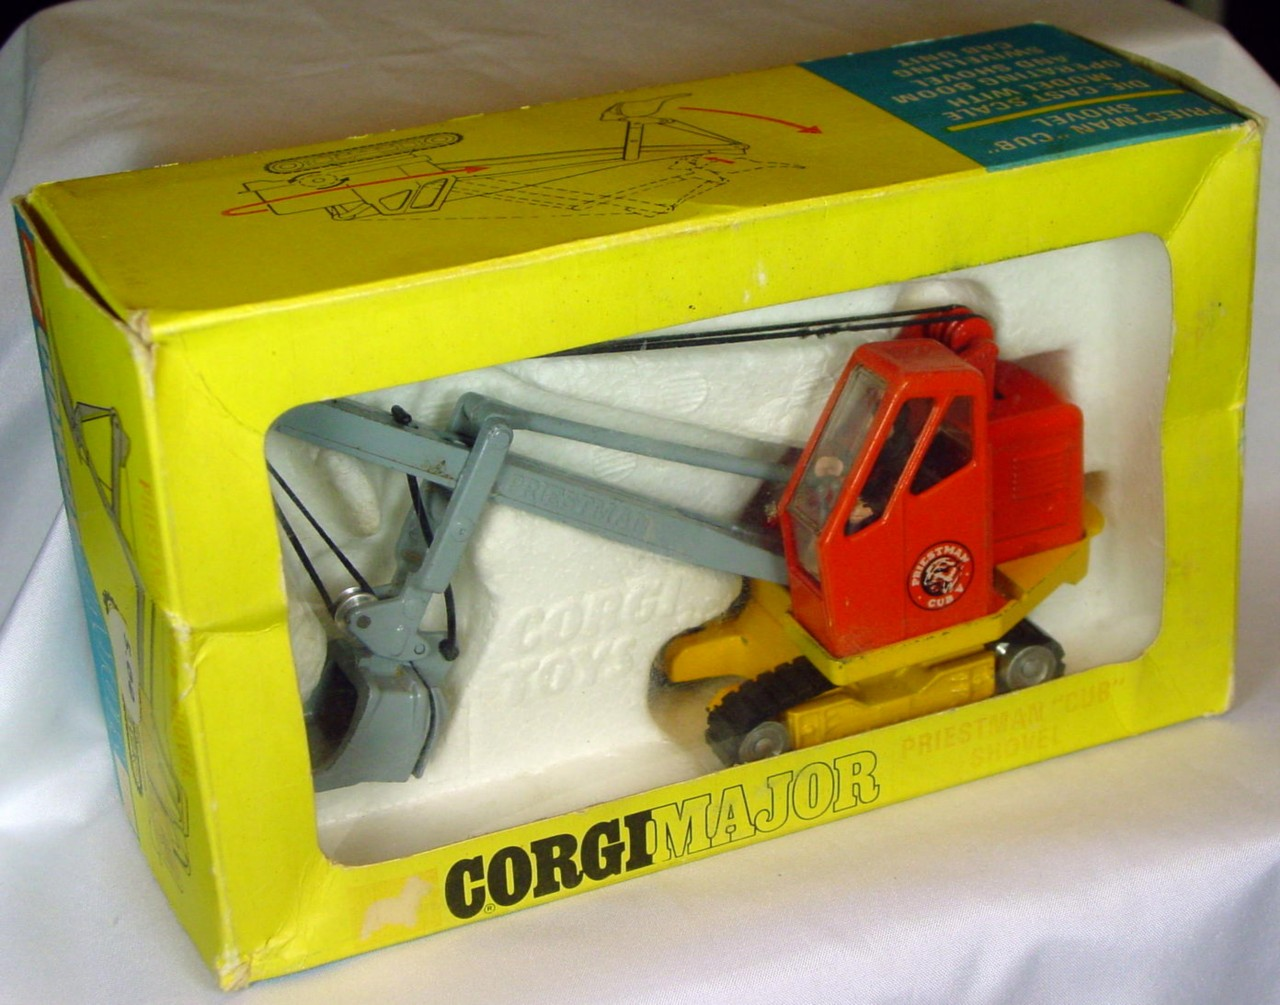 Corgi 1128 - Priestman Cub Shovel Red and yellow Very Near Mint slight box fade